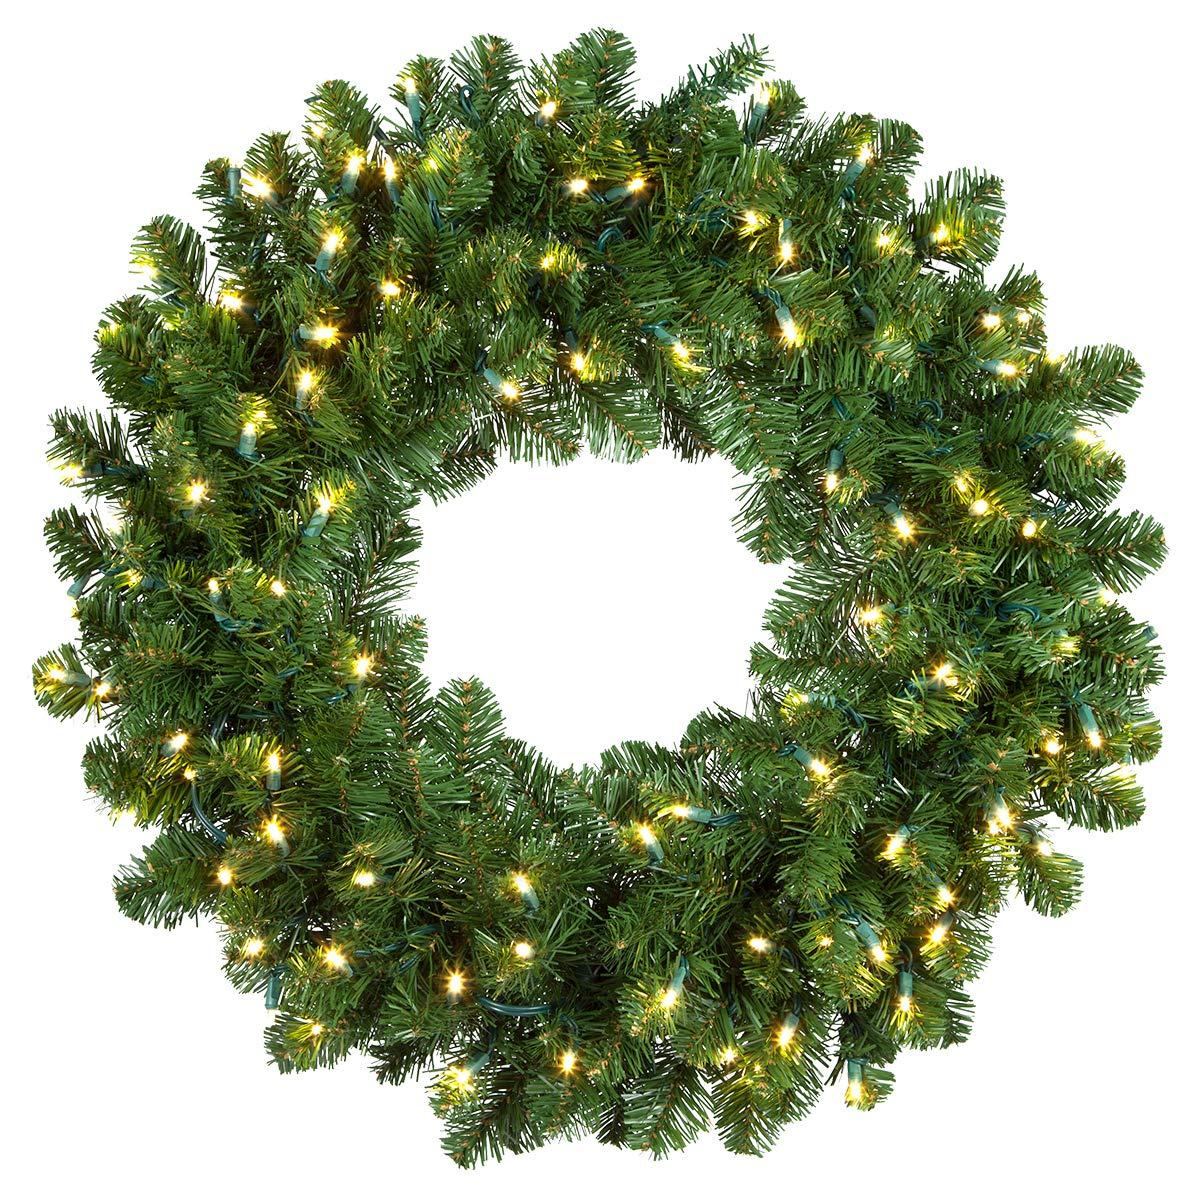 """Red Sleigh Oregon Fir Commercial Grade Holiday Wreaths with Matching Christmas Garland Greenery (36"""" Wreath, Warm White LED Lights)"""